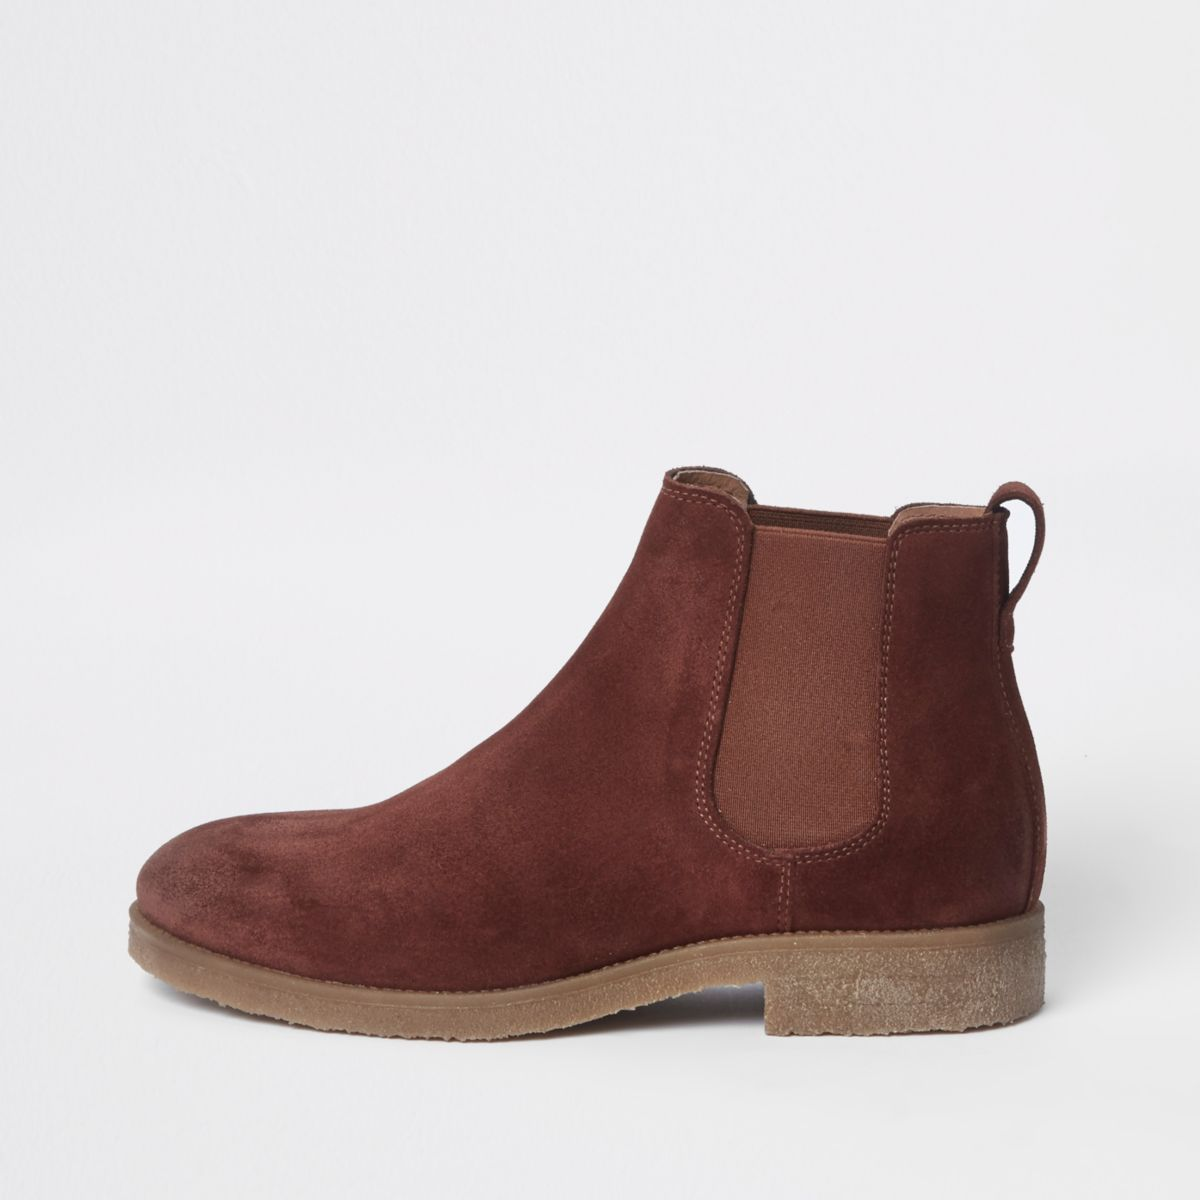 Rust orange suede chelsea boot